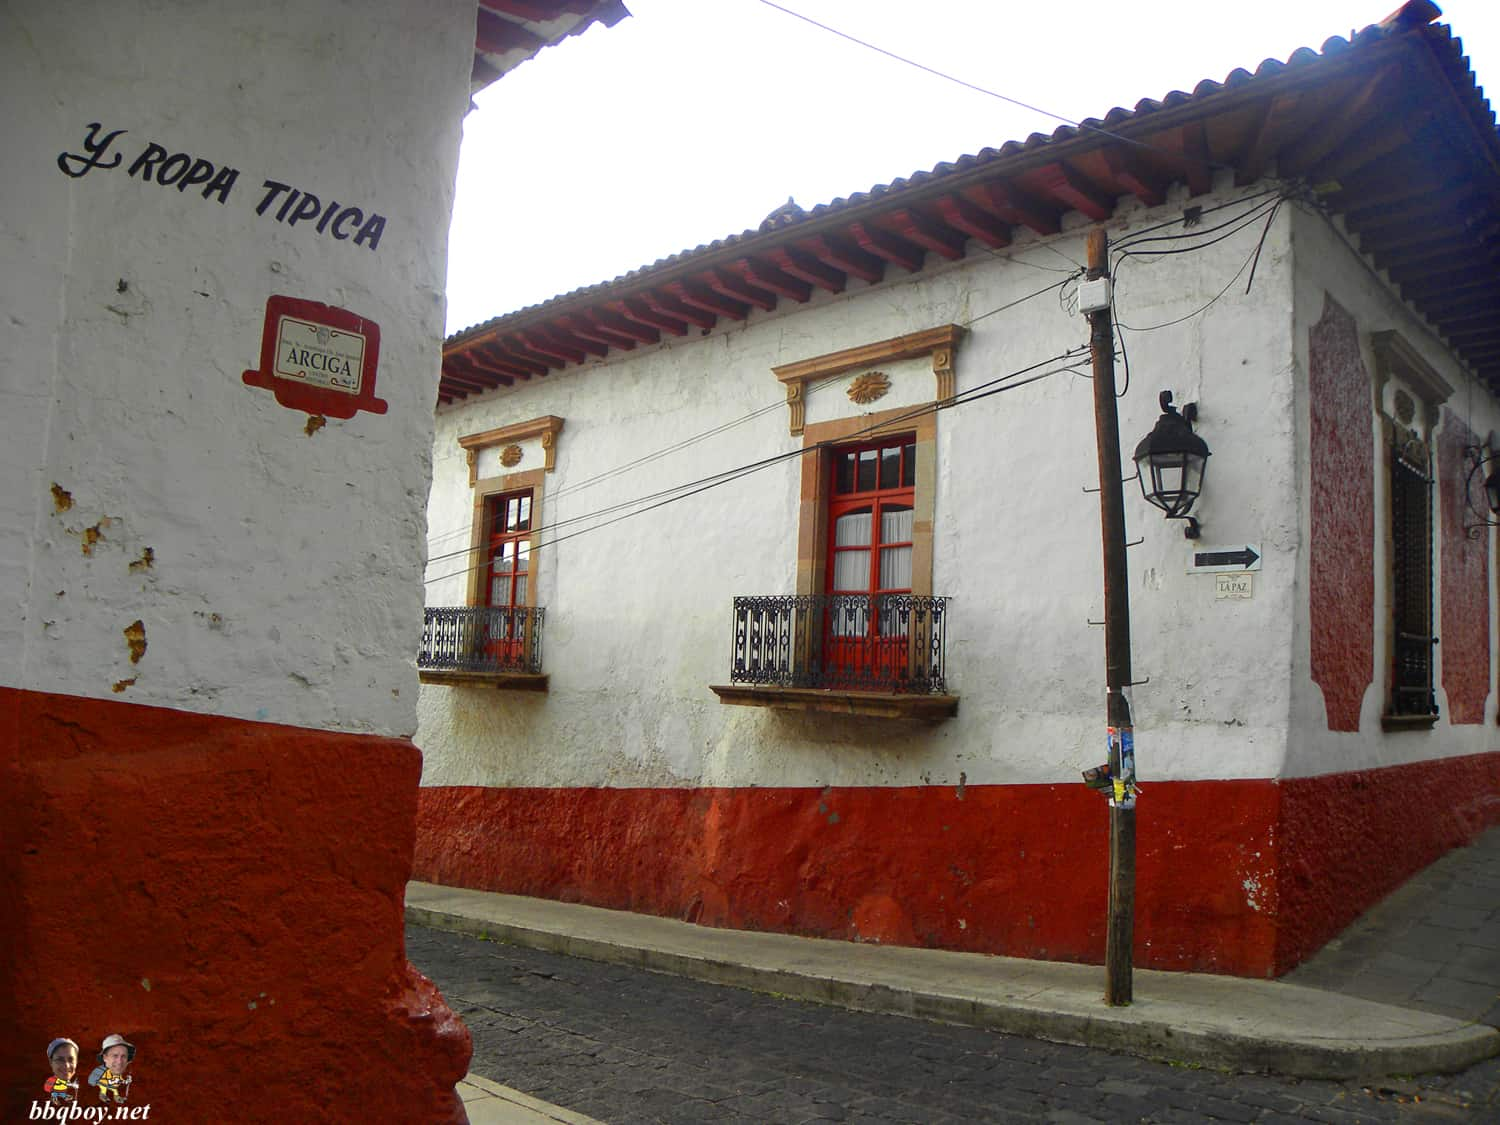 streets in Patzcuaro, Mexico